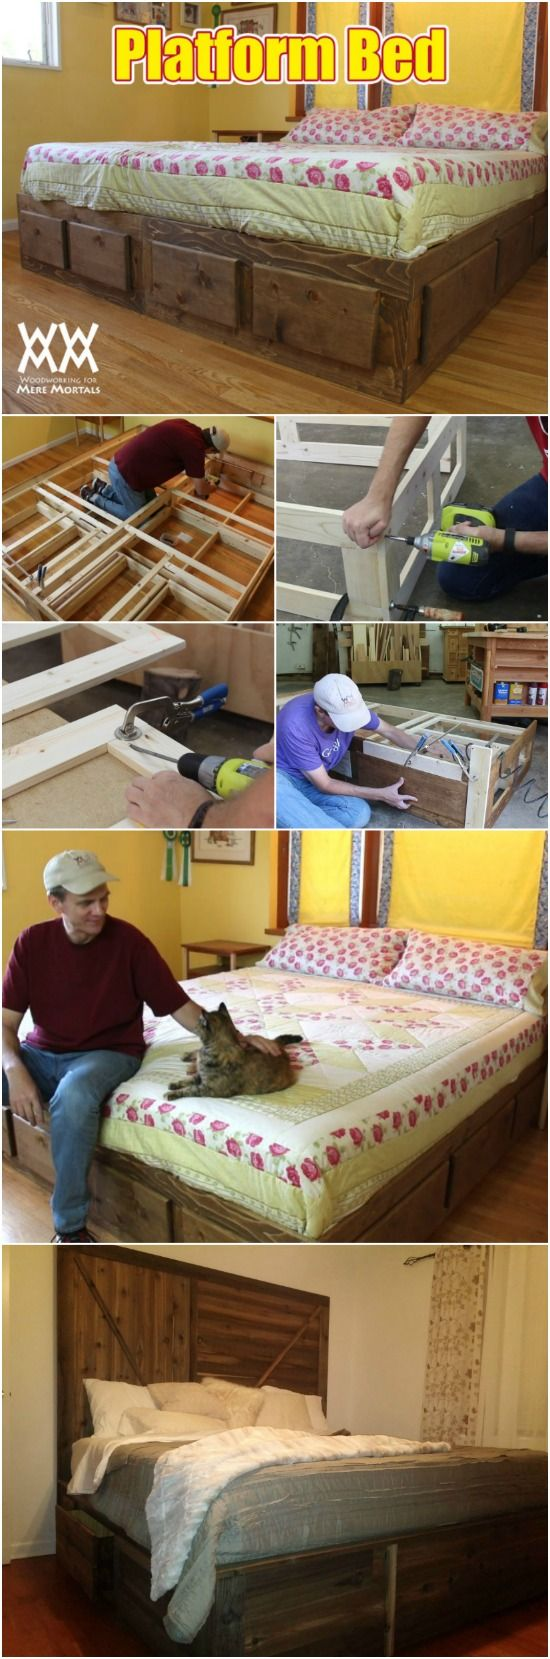 King size bed with storage underneath - 17 Best Ideas About King Size Storage Bed On Pinterest Bed Frame Plans Bed Frame Storage And Diy Bed Frame